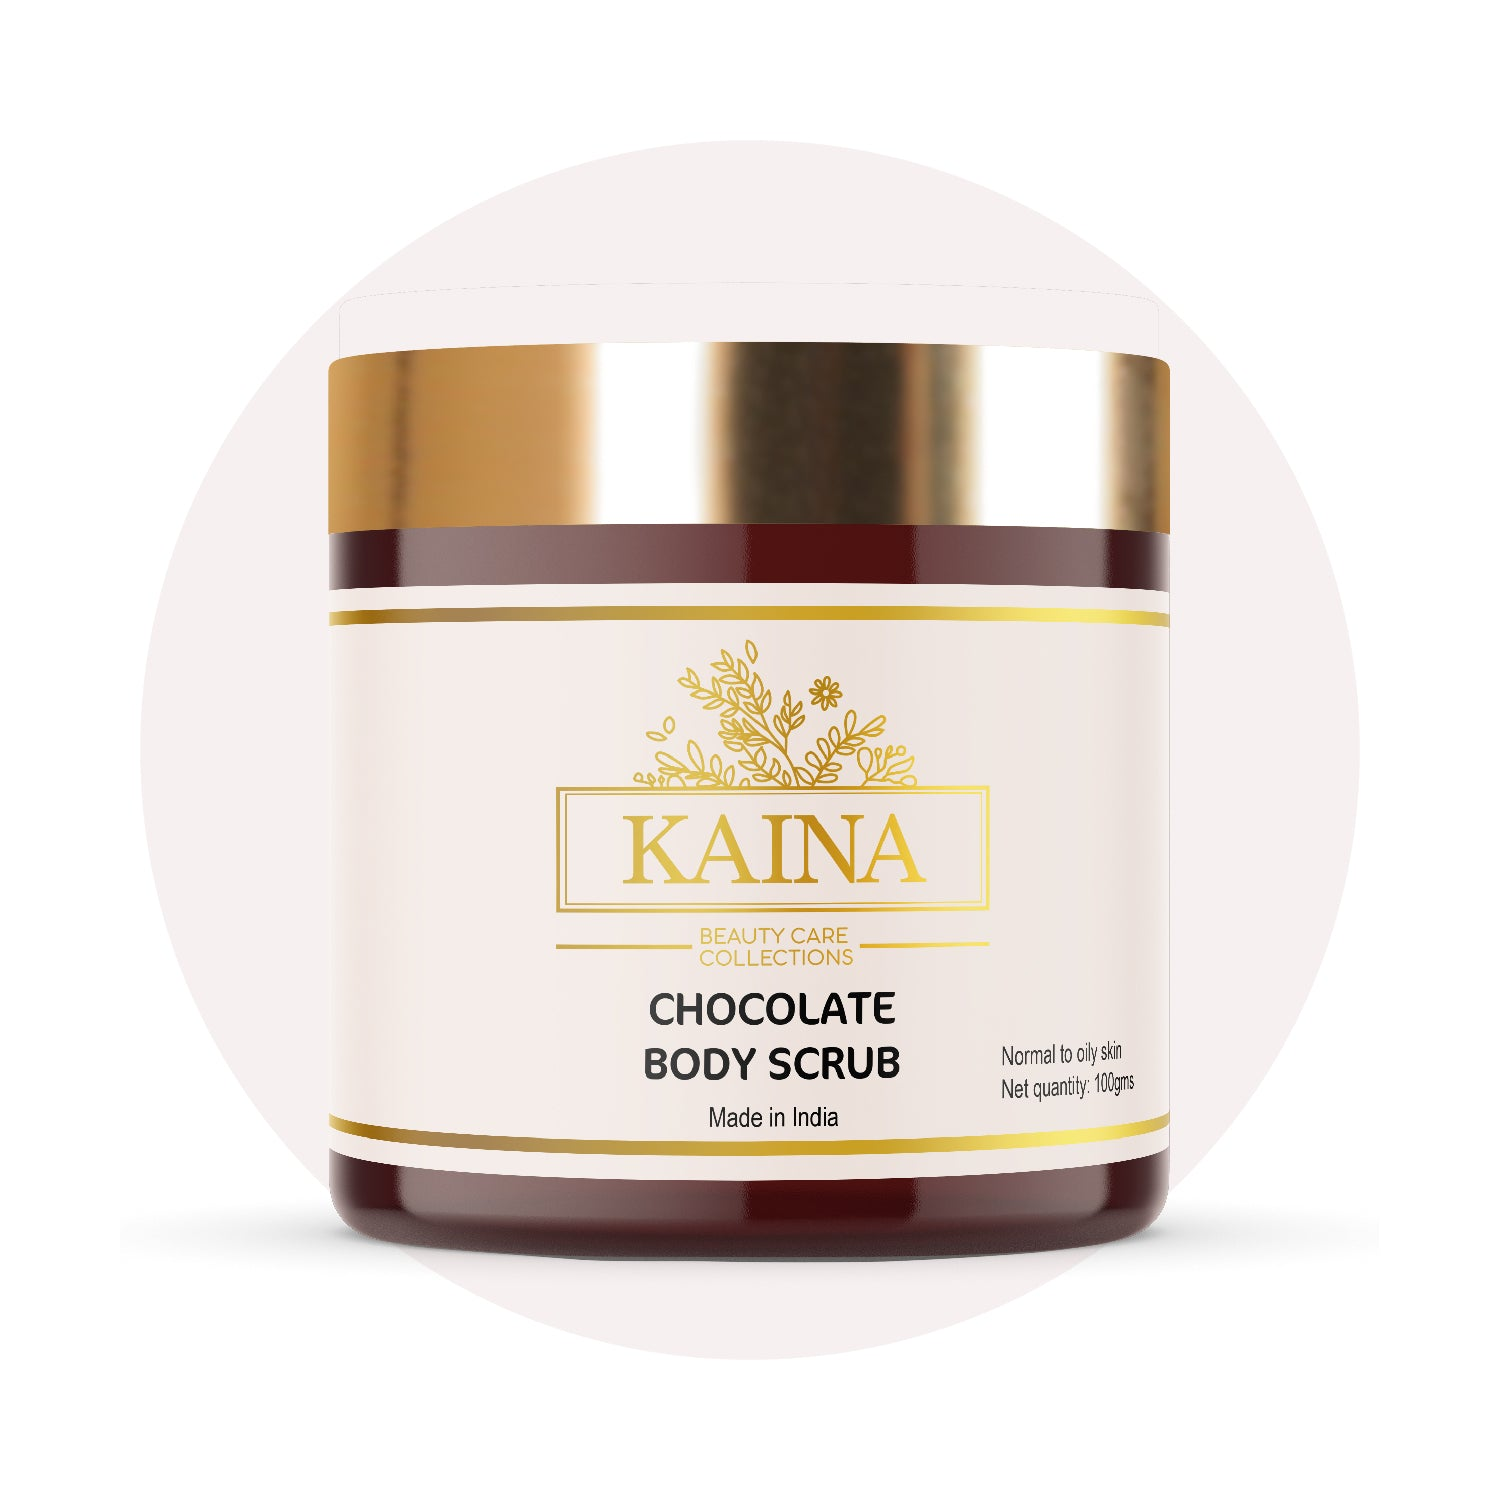 Kaina Skincare Chocolate Body Scrub 100g | Pigmentation & Dark spots Reduction 100g